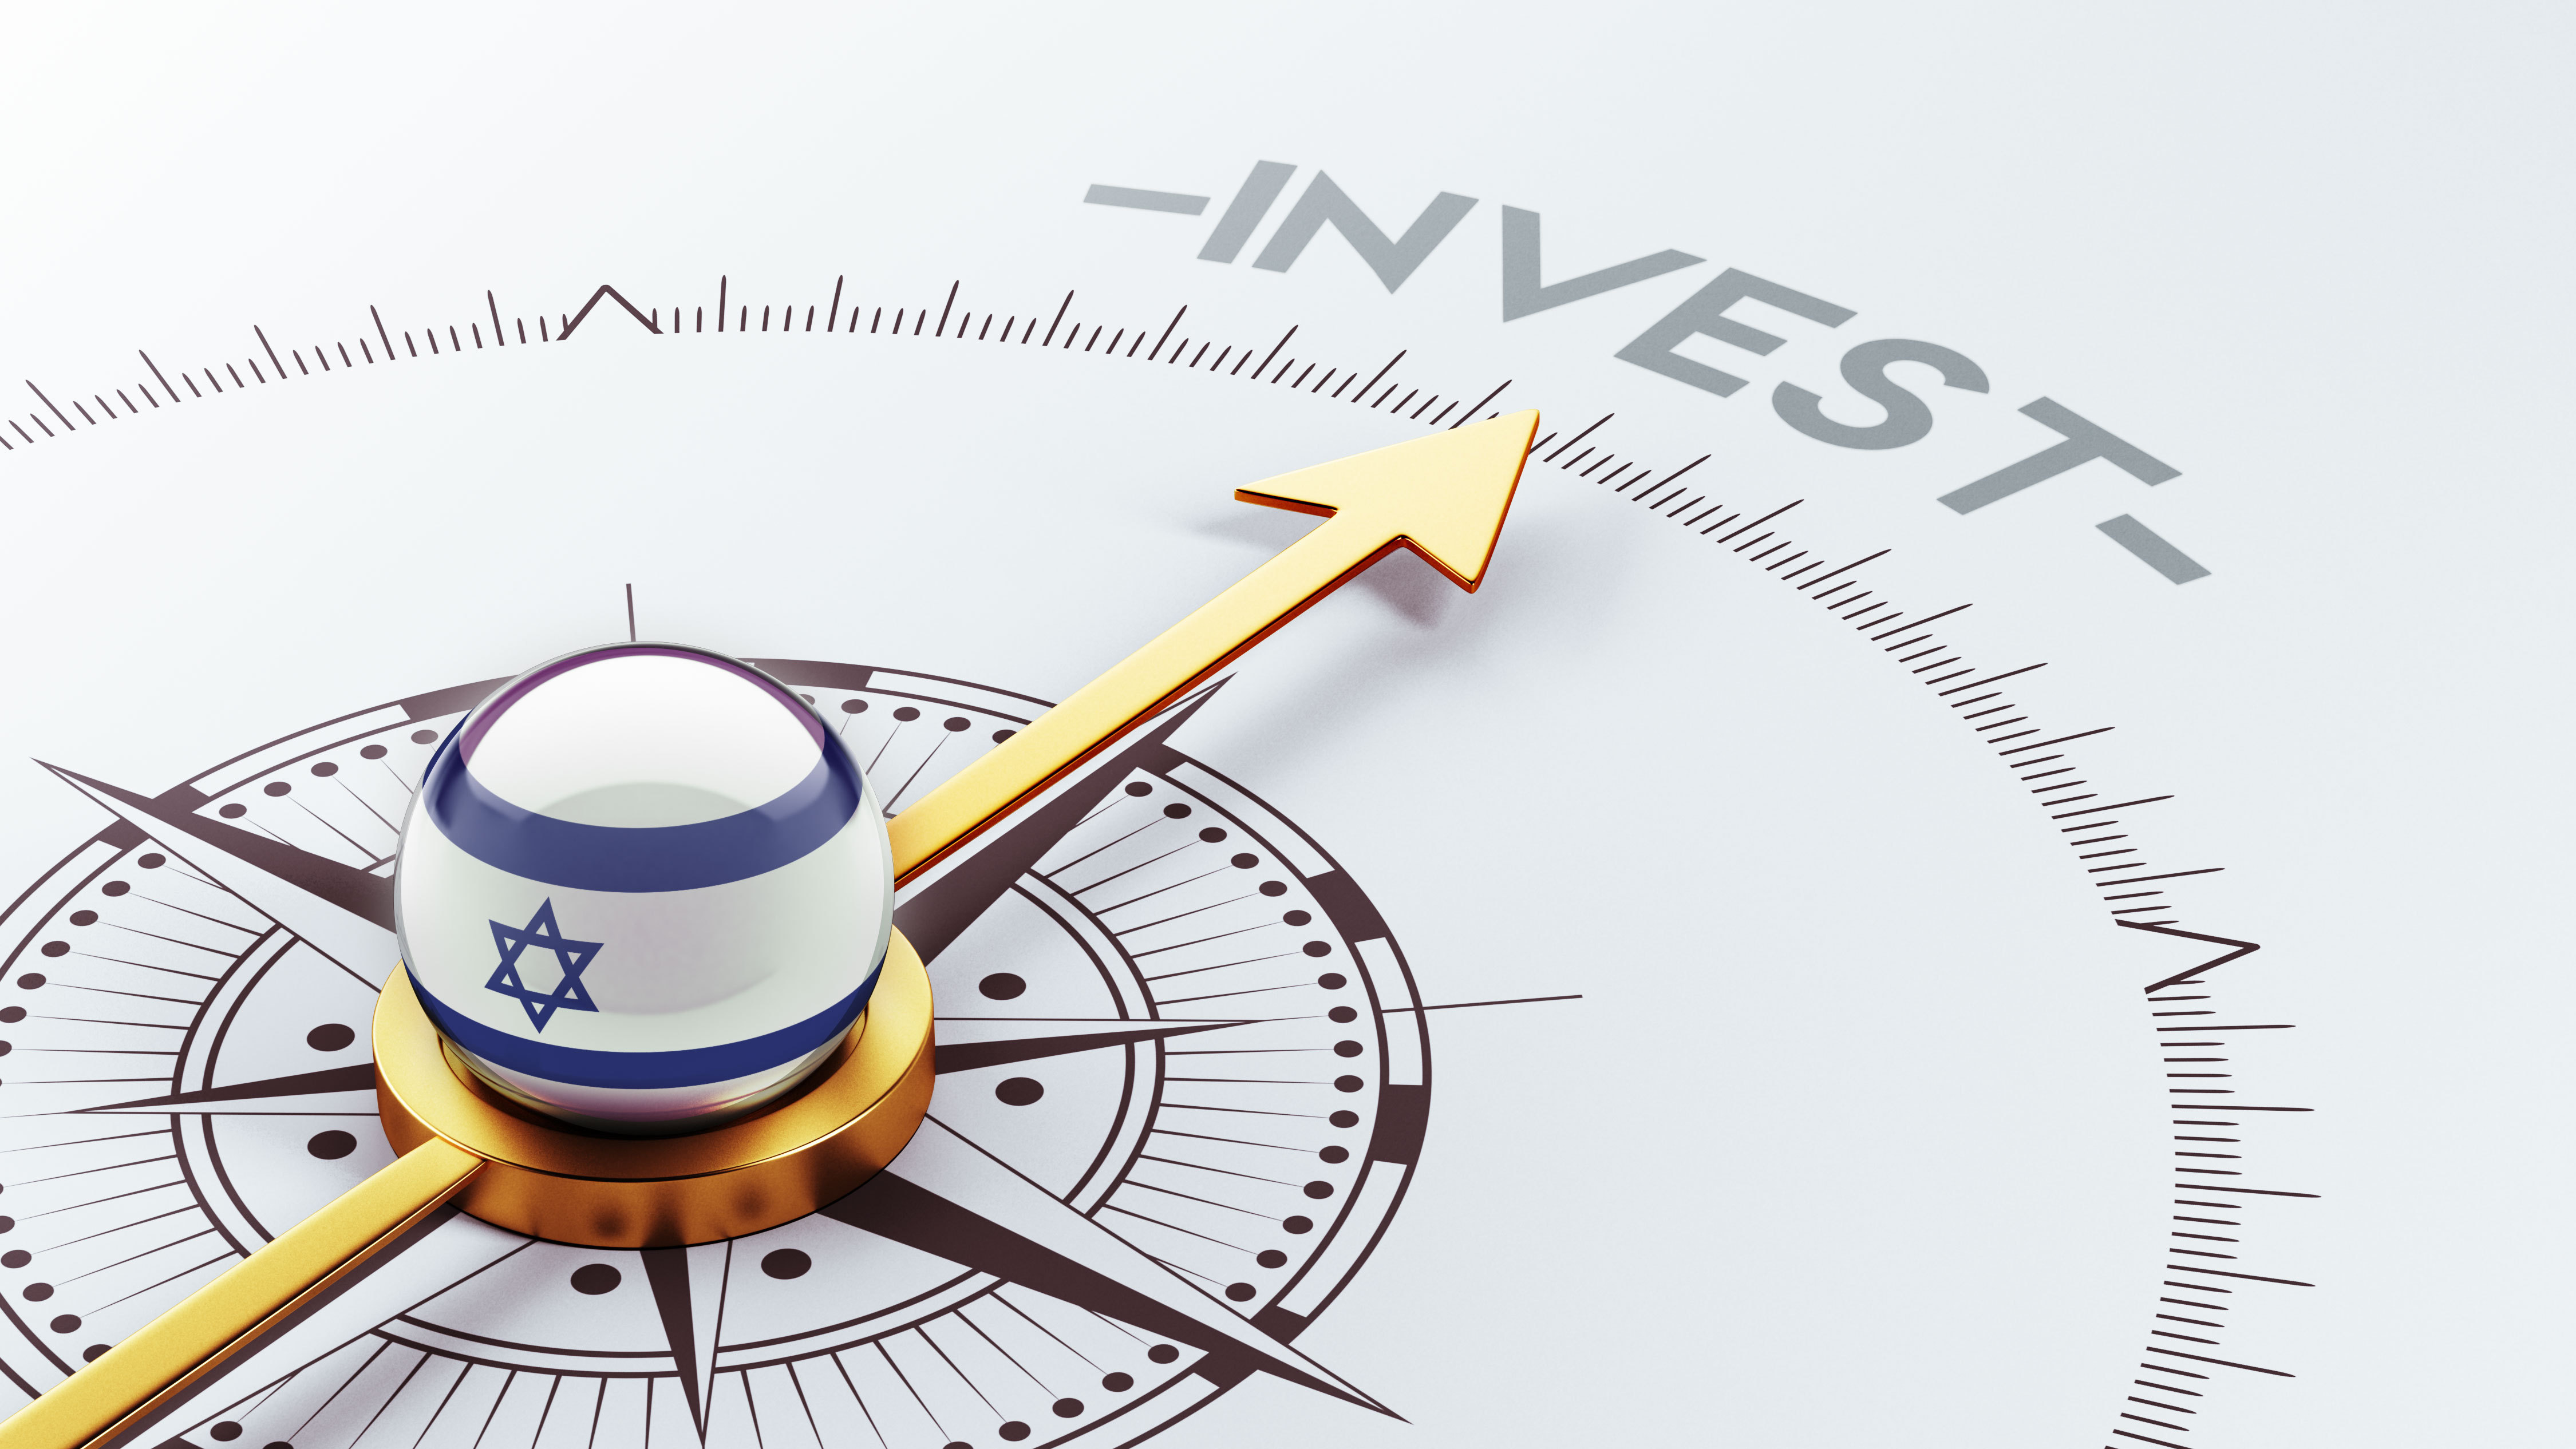 Israel Investment Possibilities Explained